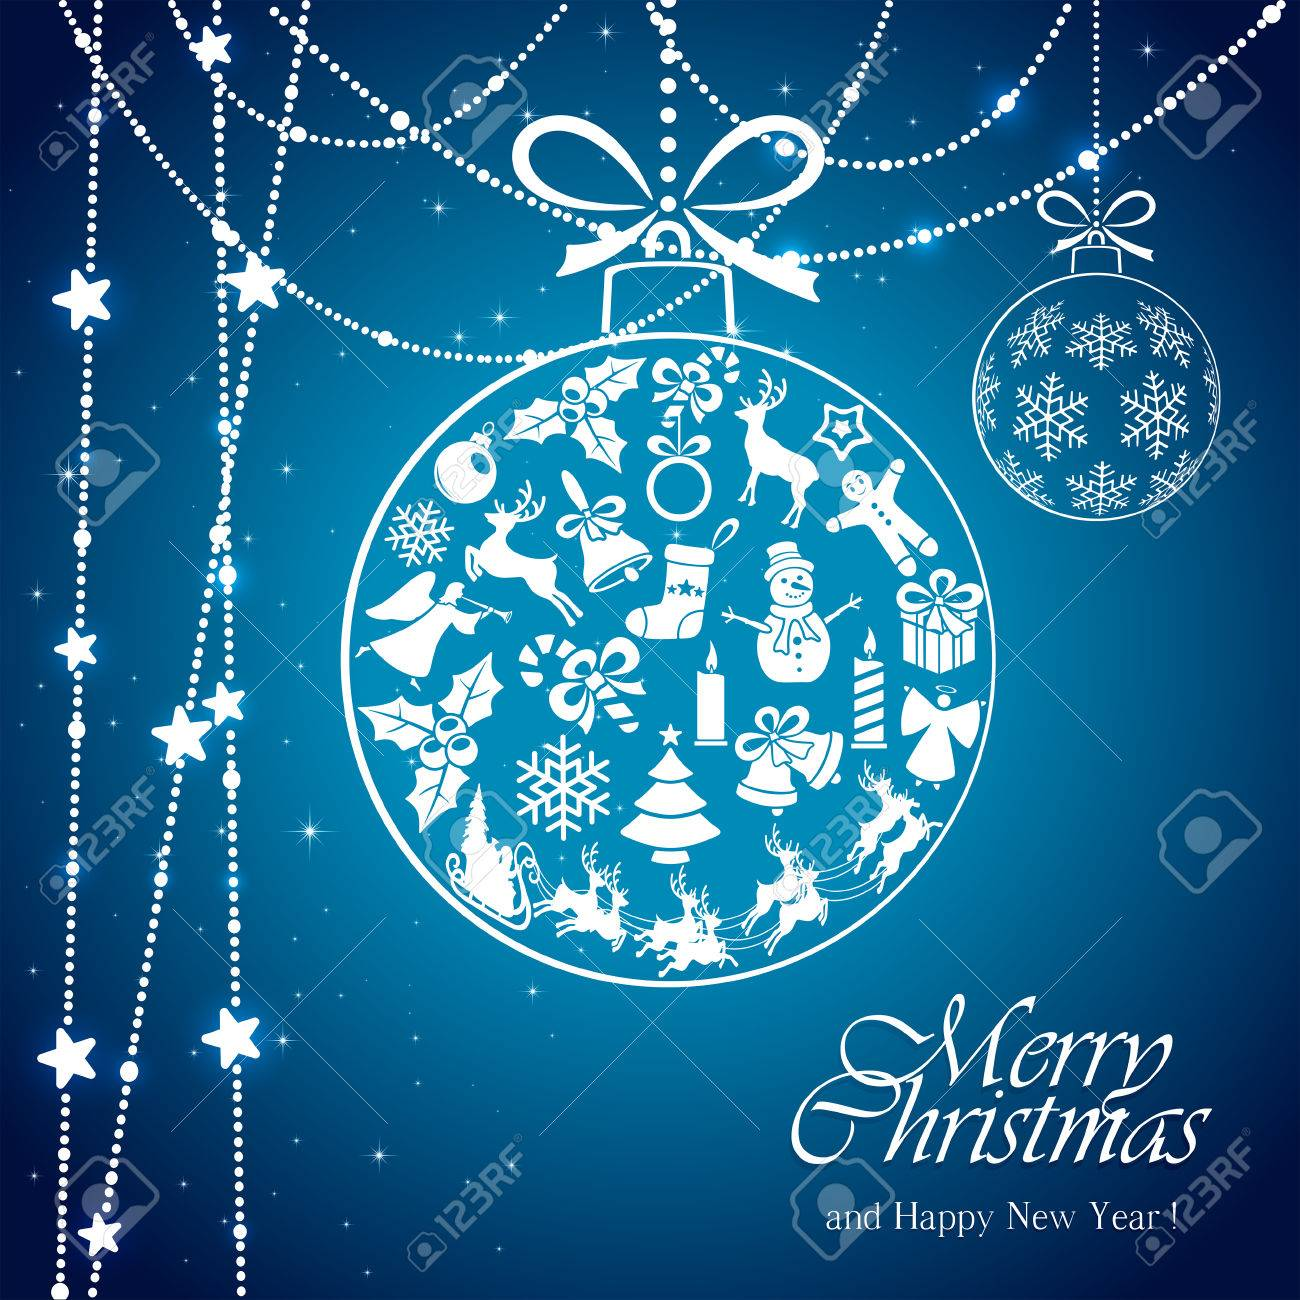 Blue Background With Transparent Ball From Christmas Elements And White Stars Illustration Stock Vector